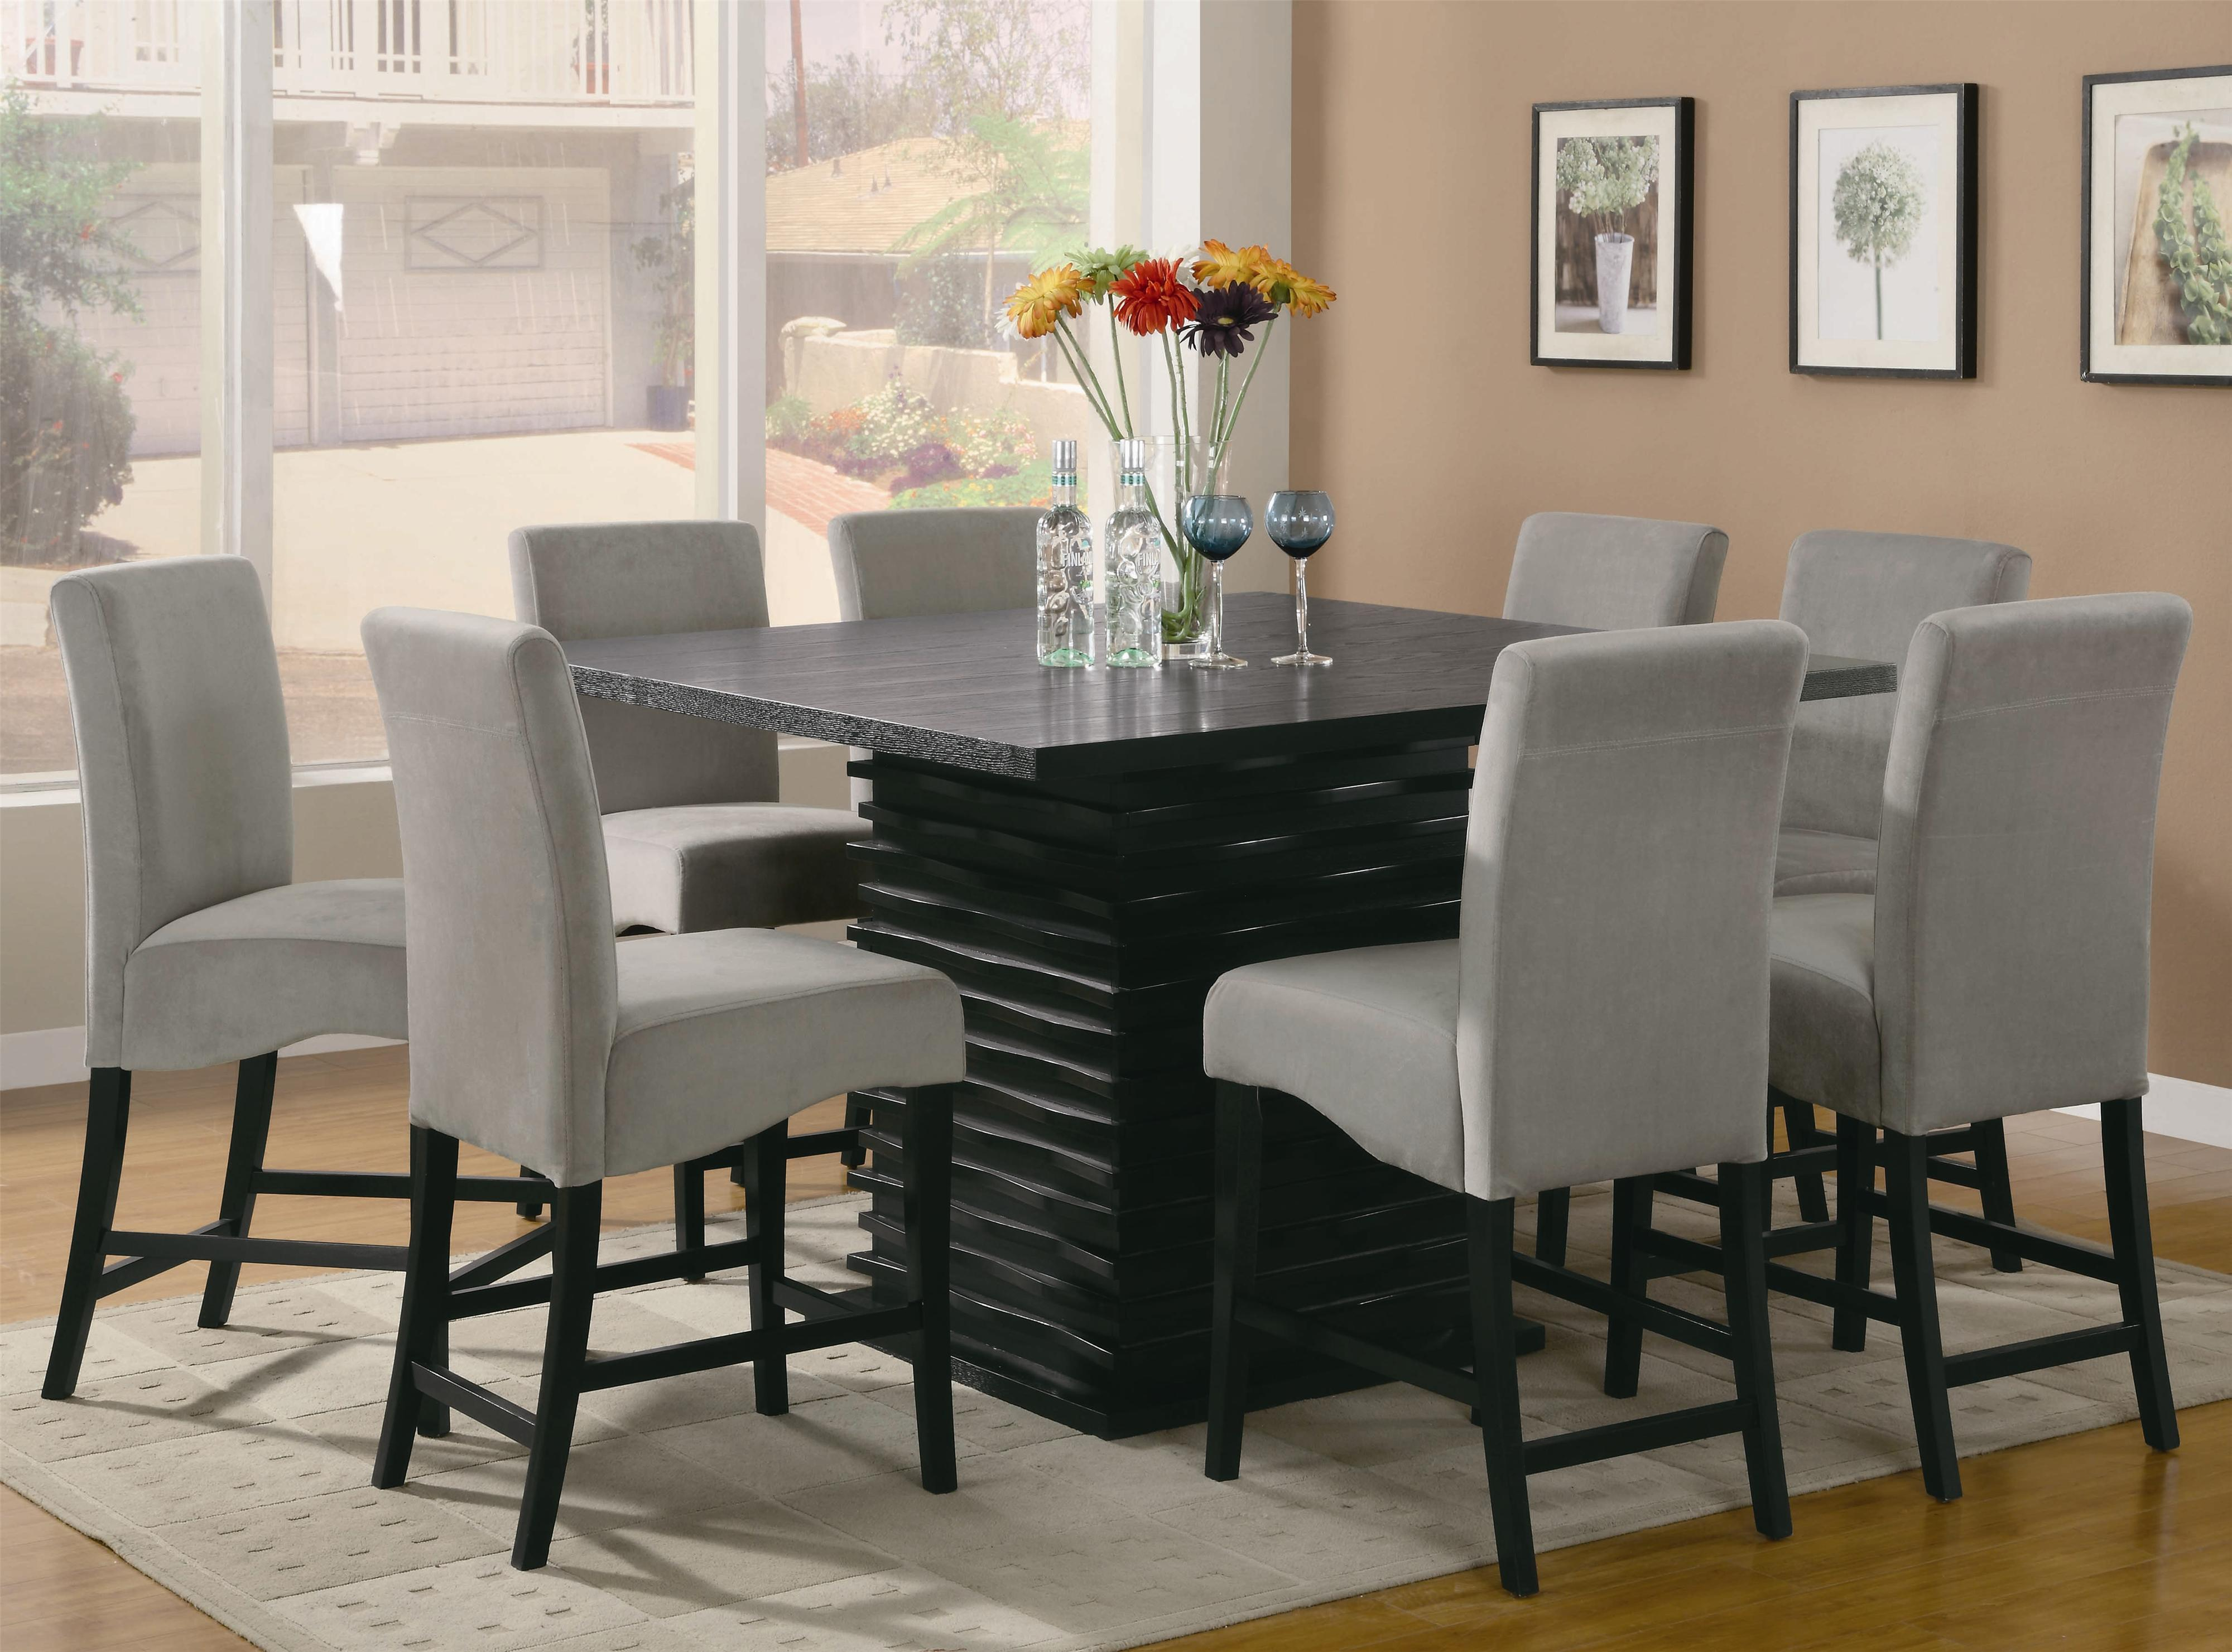 Black Wave Counter Height Dining Table and Chair Set